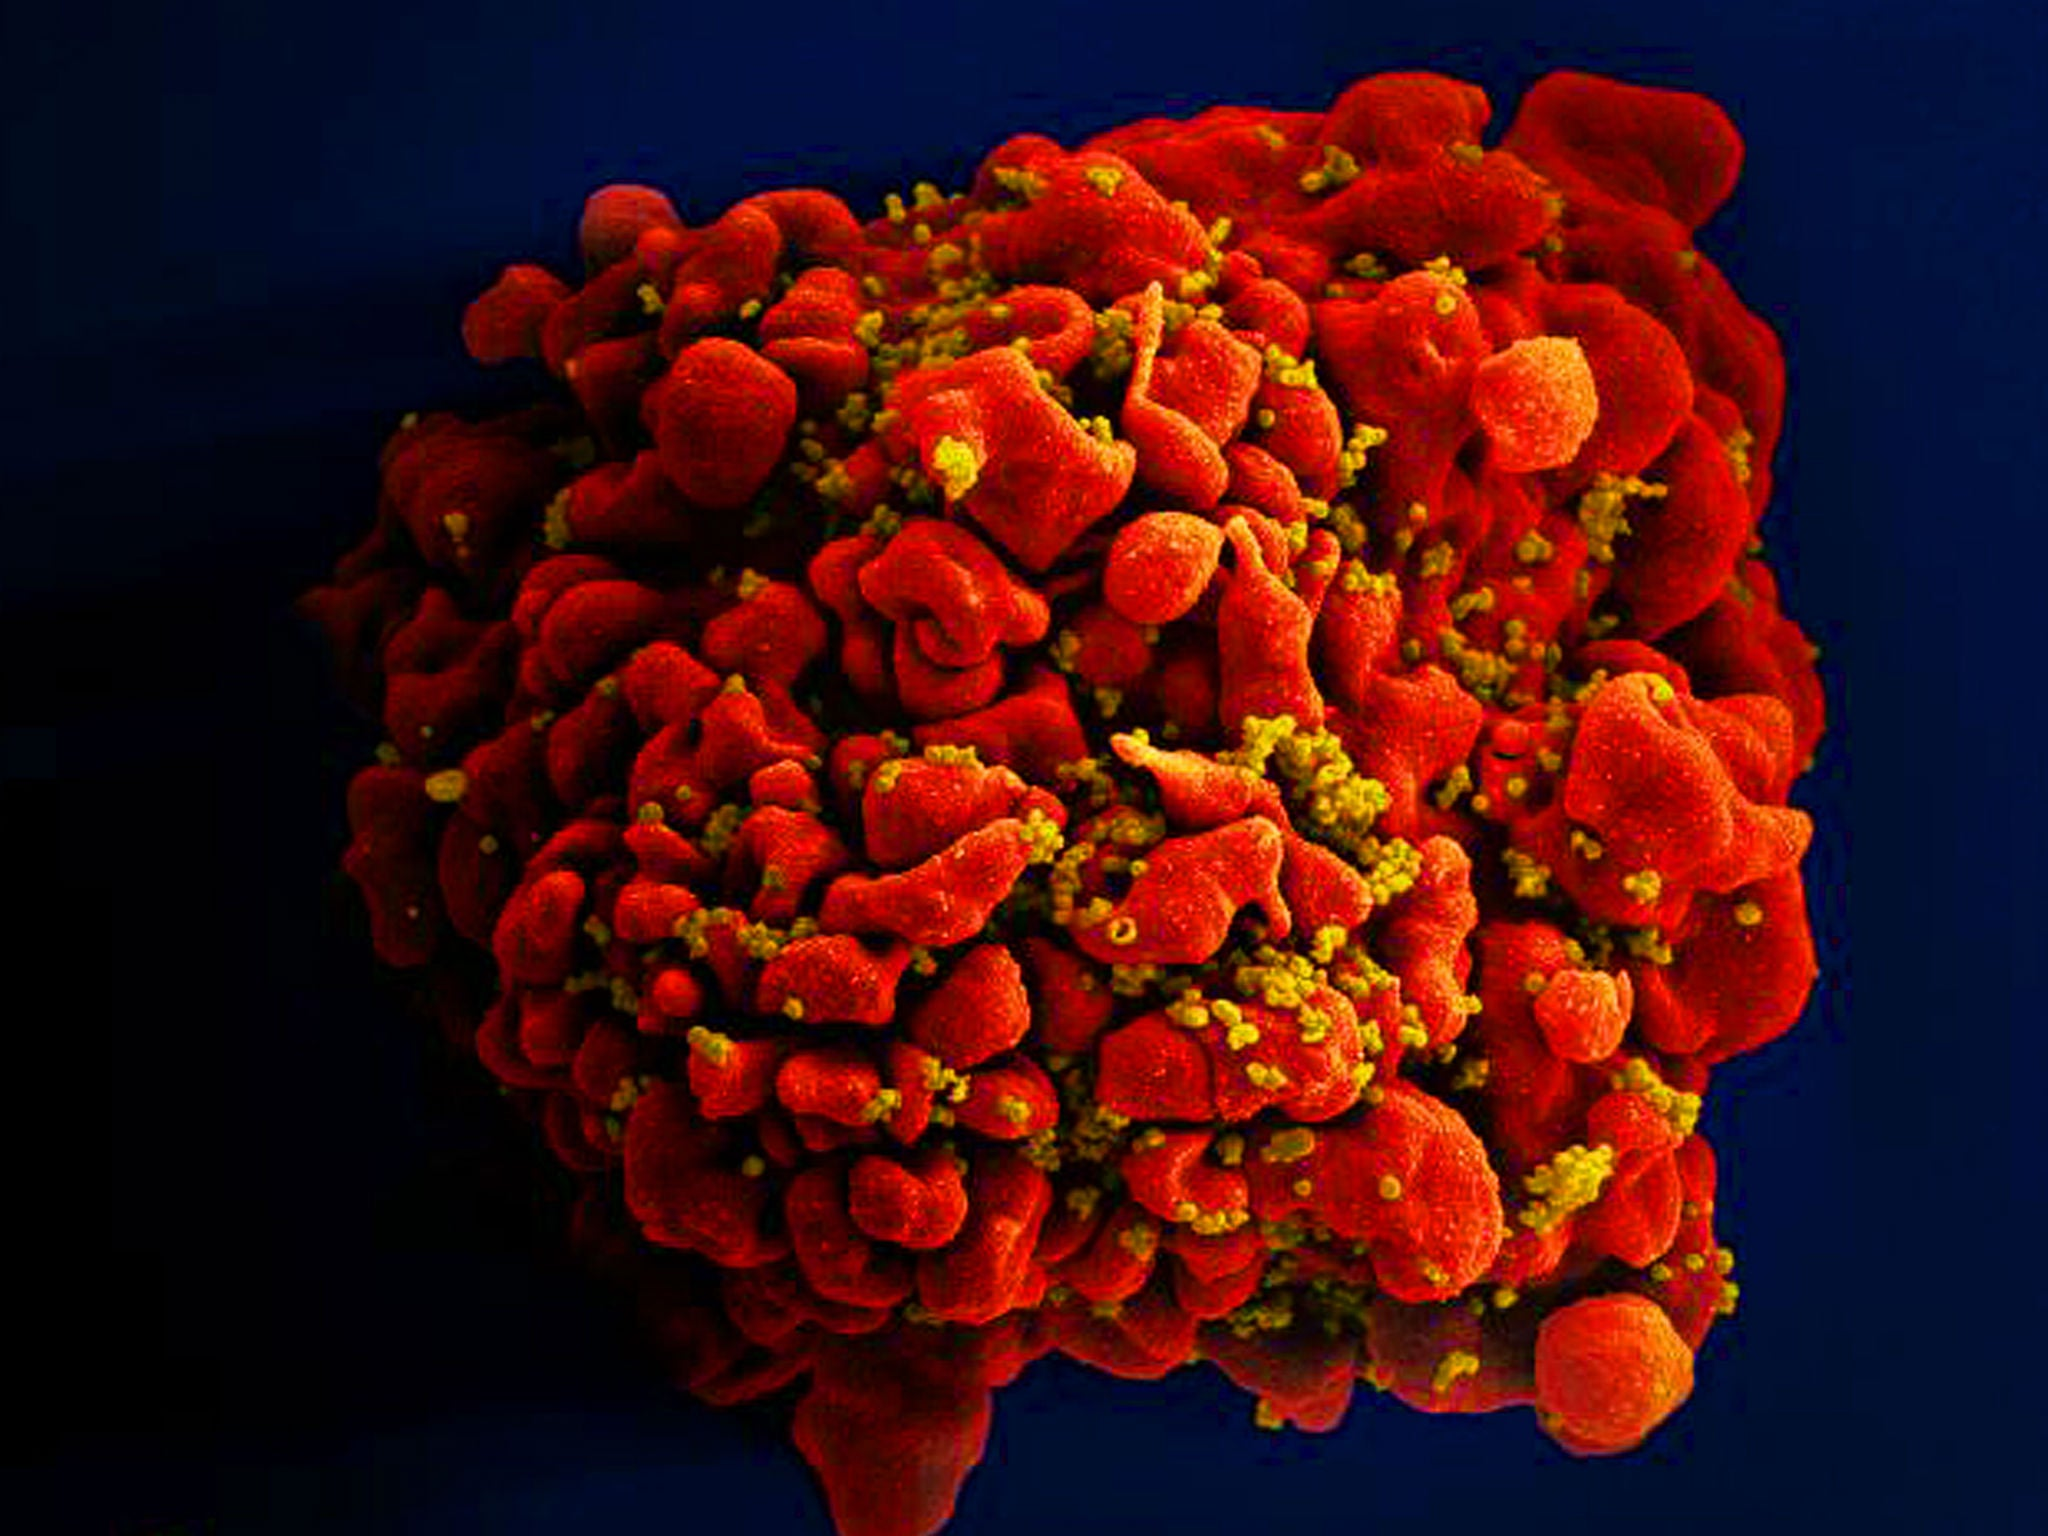 Scientists just created an antibody that attacks 99 per cent of HIV strains